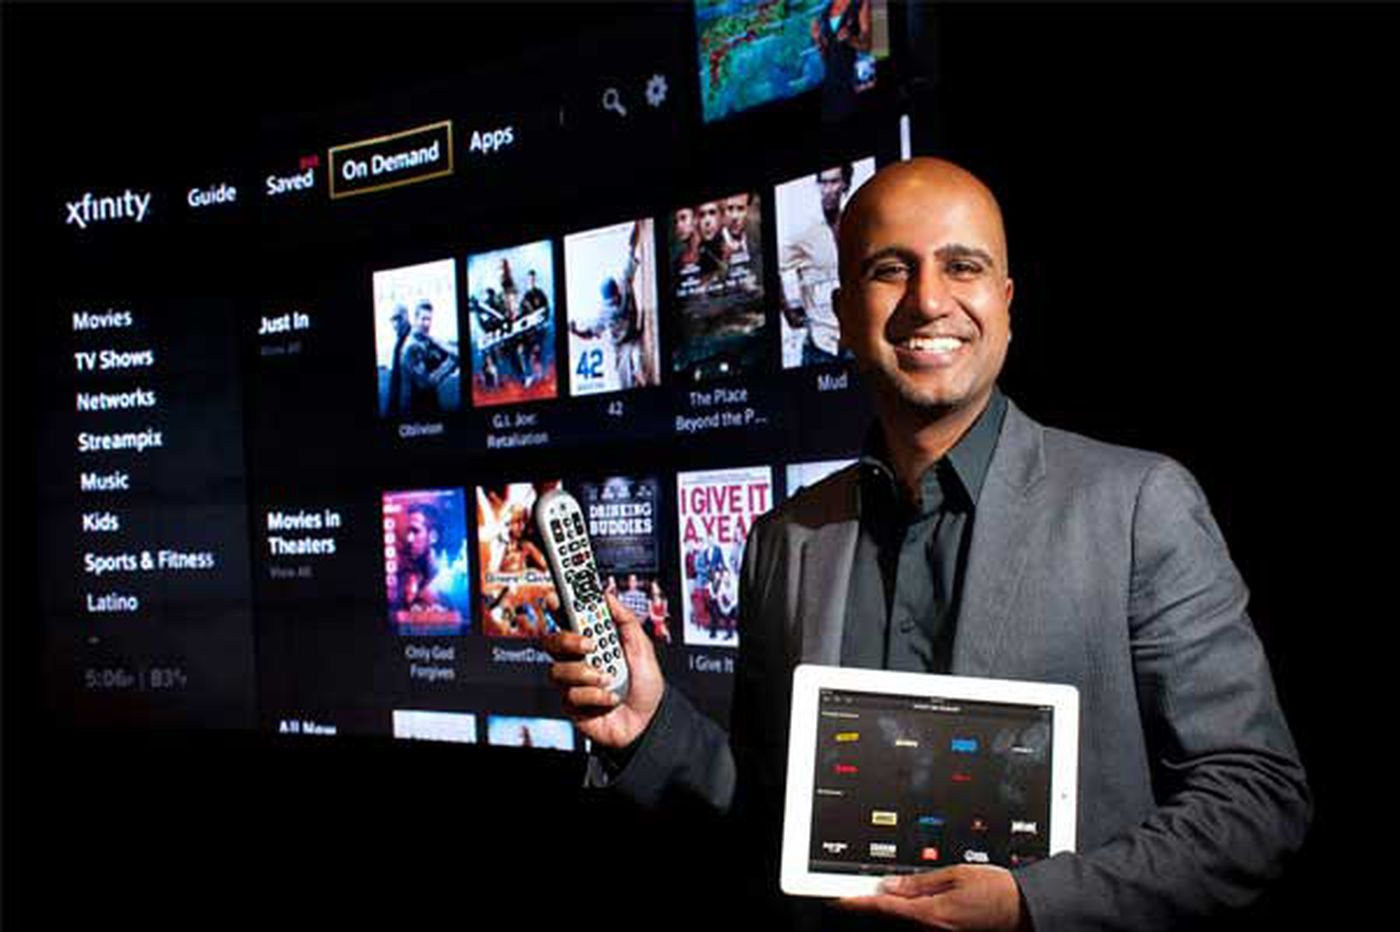 Jeff Gelles: Comcast offers its own TV-management package